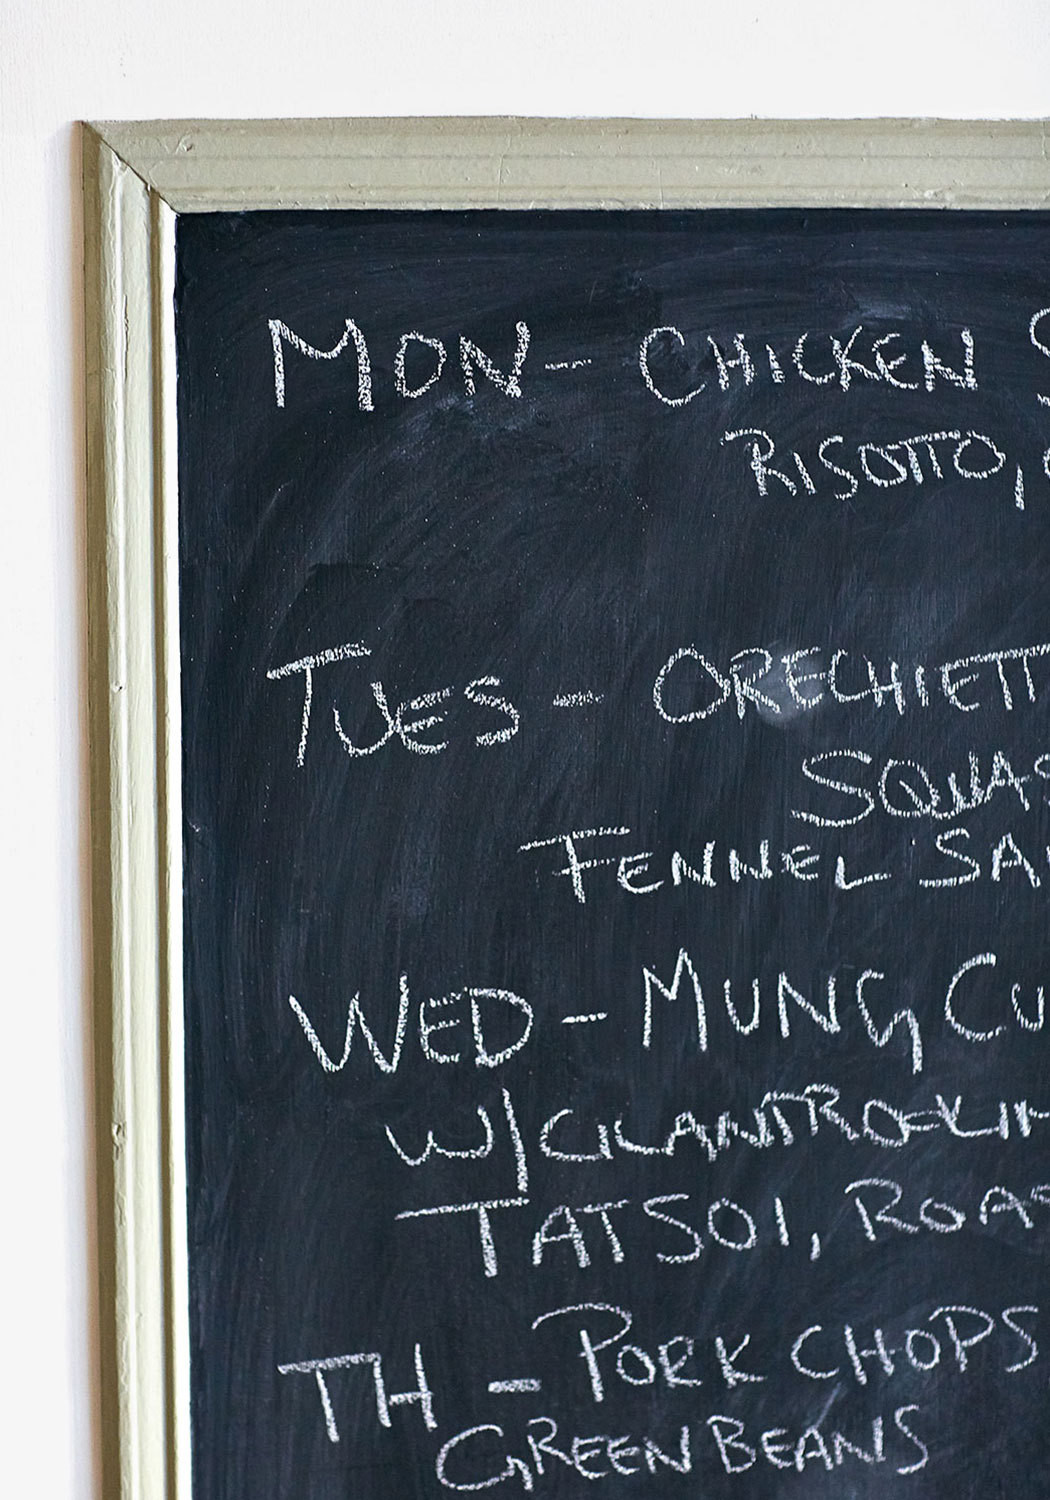 The food-centered family's weekly menu on a chalkboard.